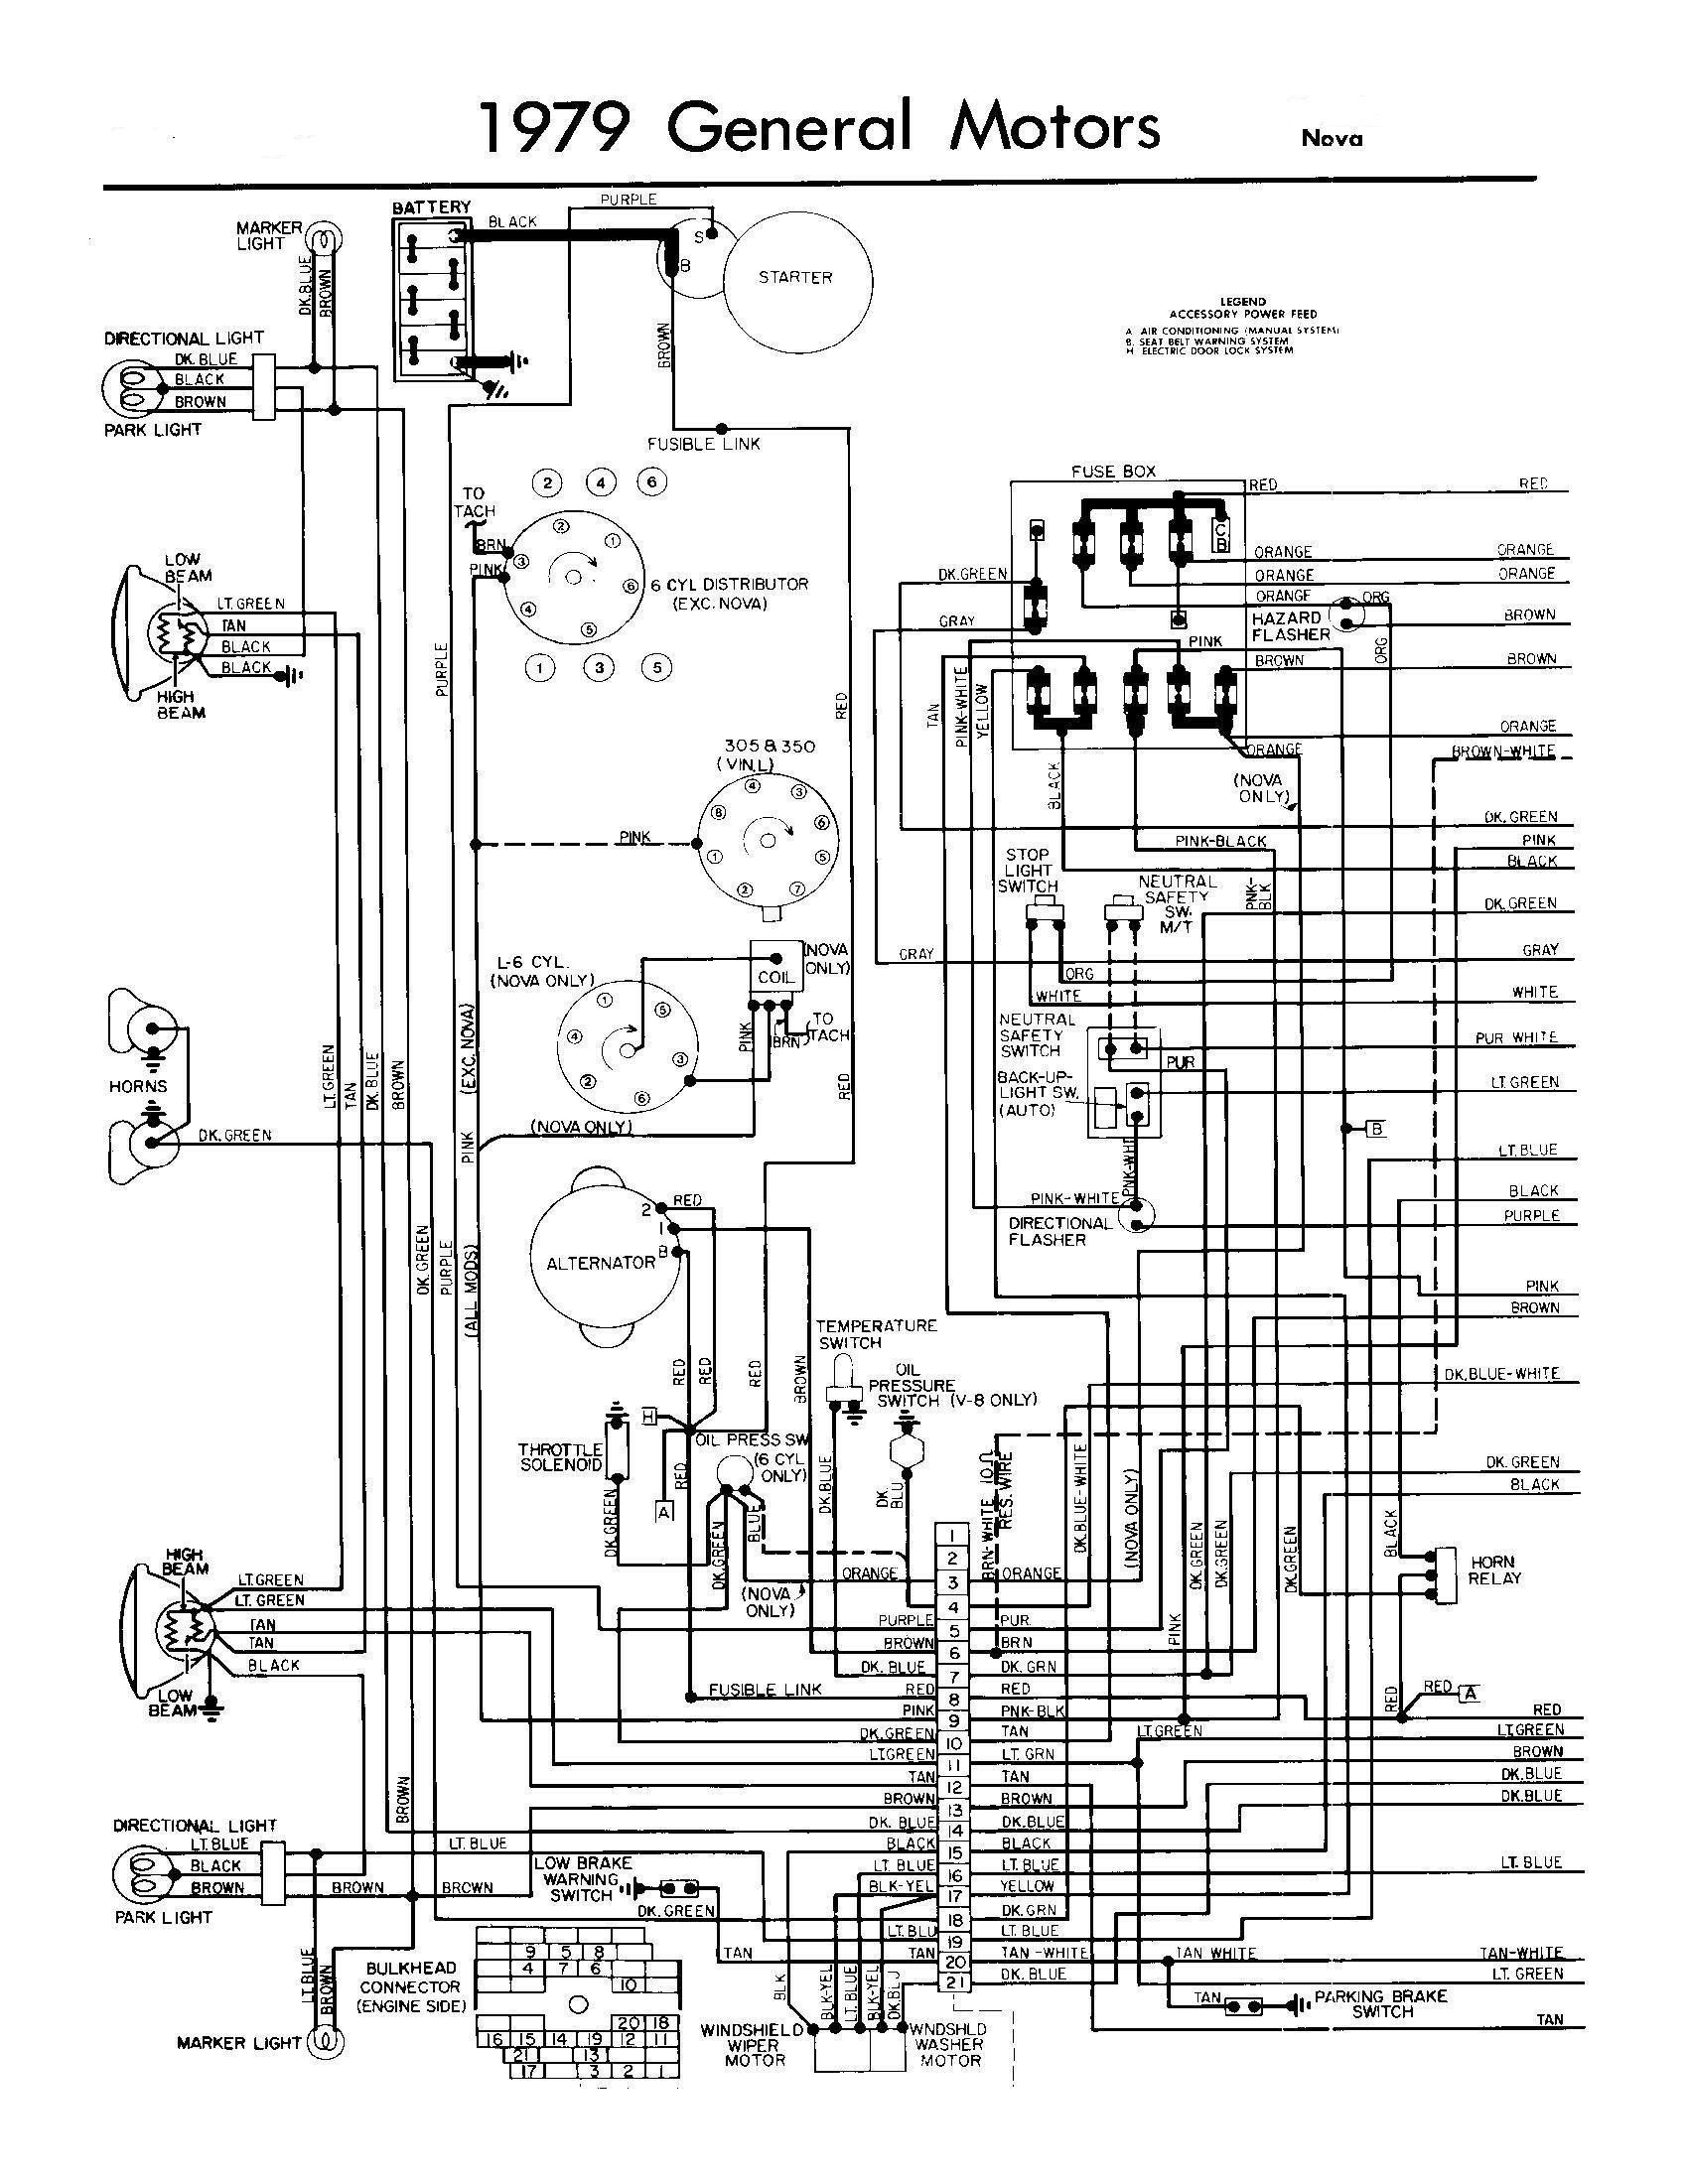 1972 Gmc Wiring Diagram 2002 Lancer Engine Bay Diagram Wiring Schematic Ace Wiring Ati Loro Jeanjaures37 Fr